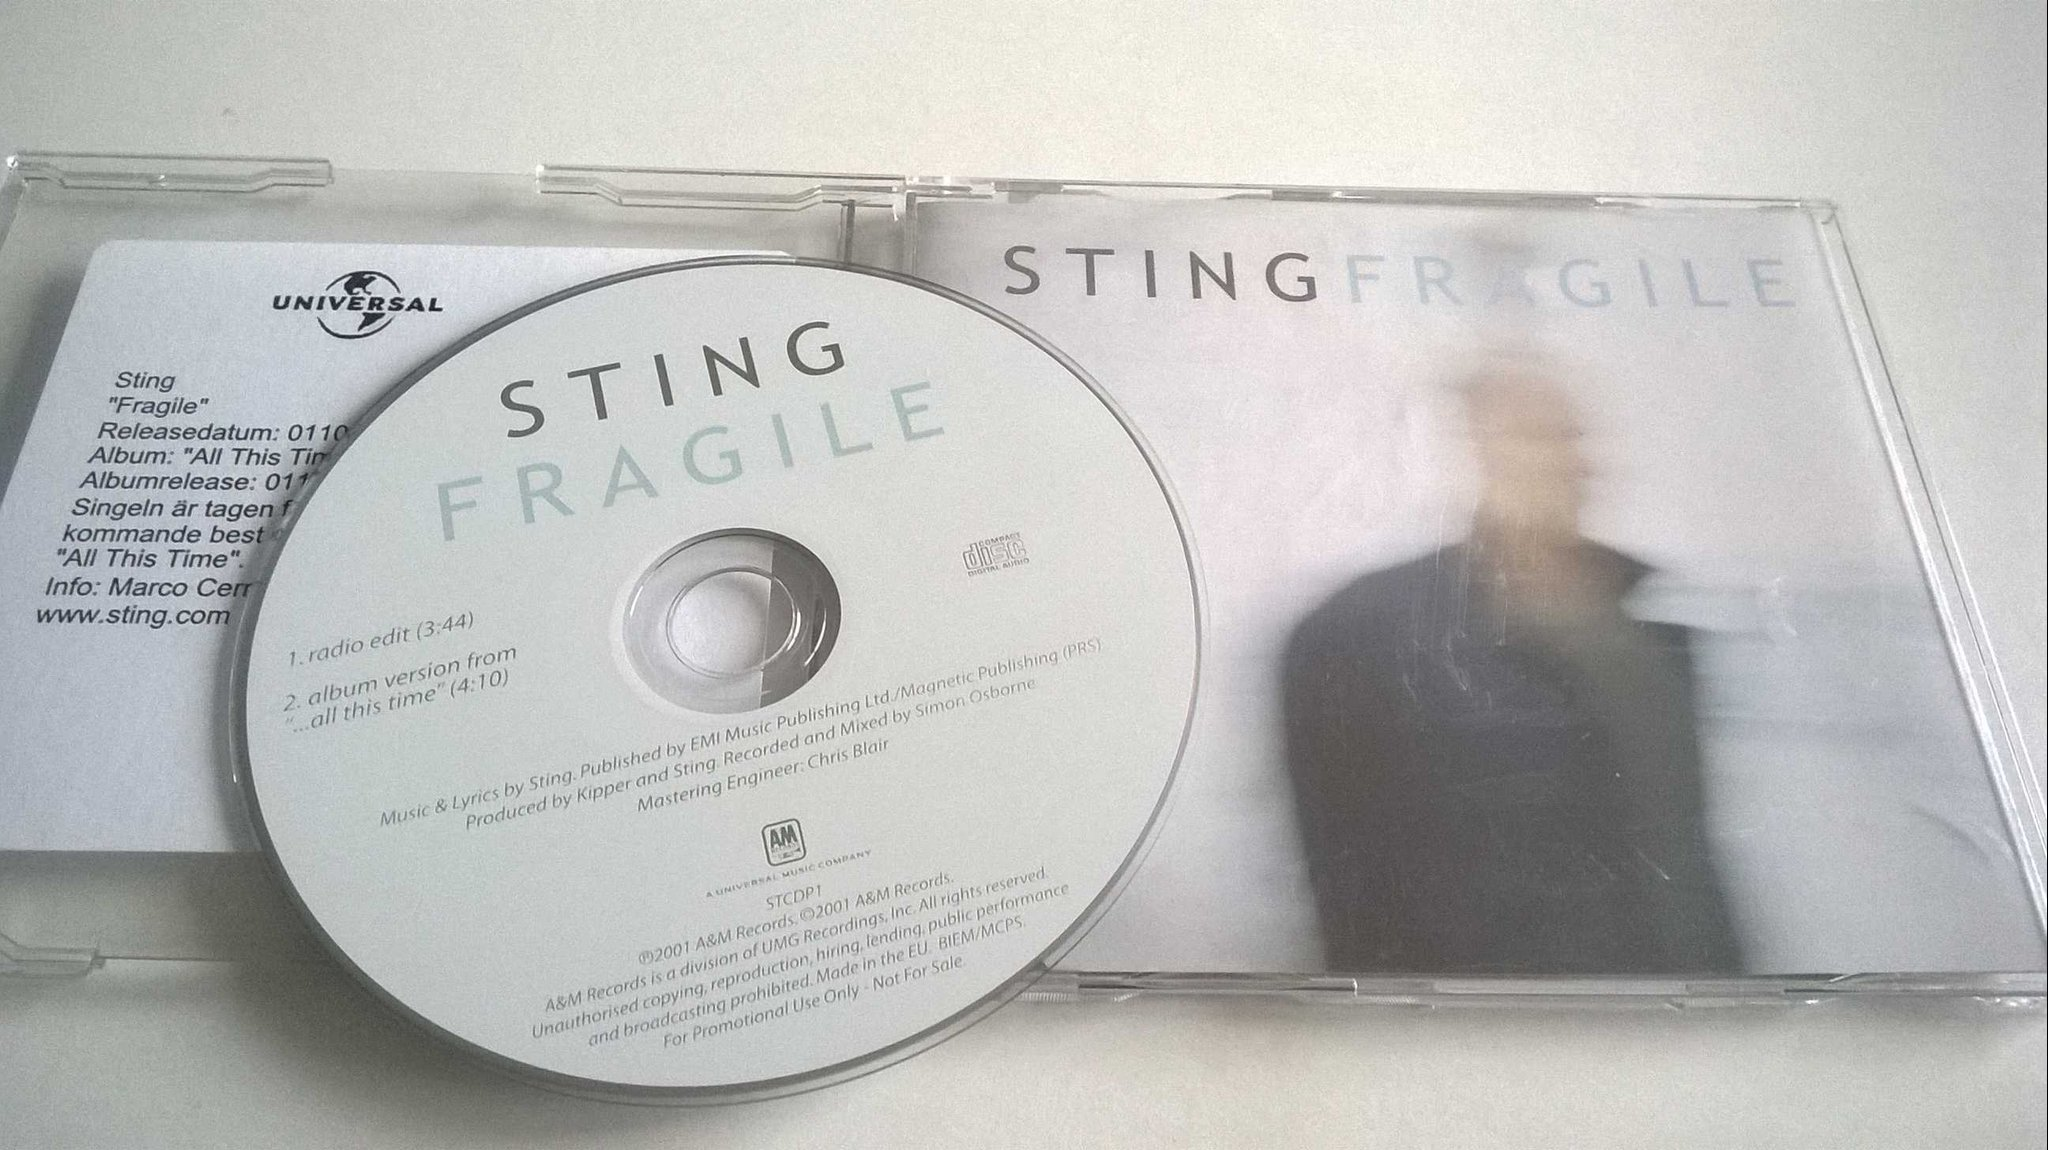 Sting - Fragile, CD, Single